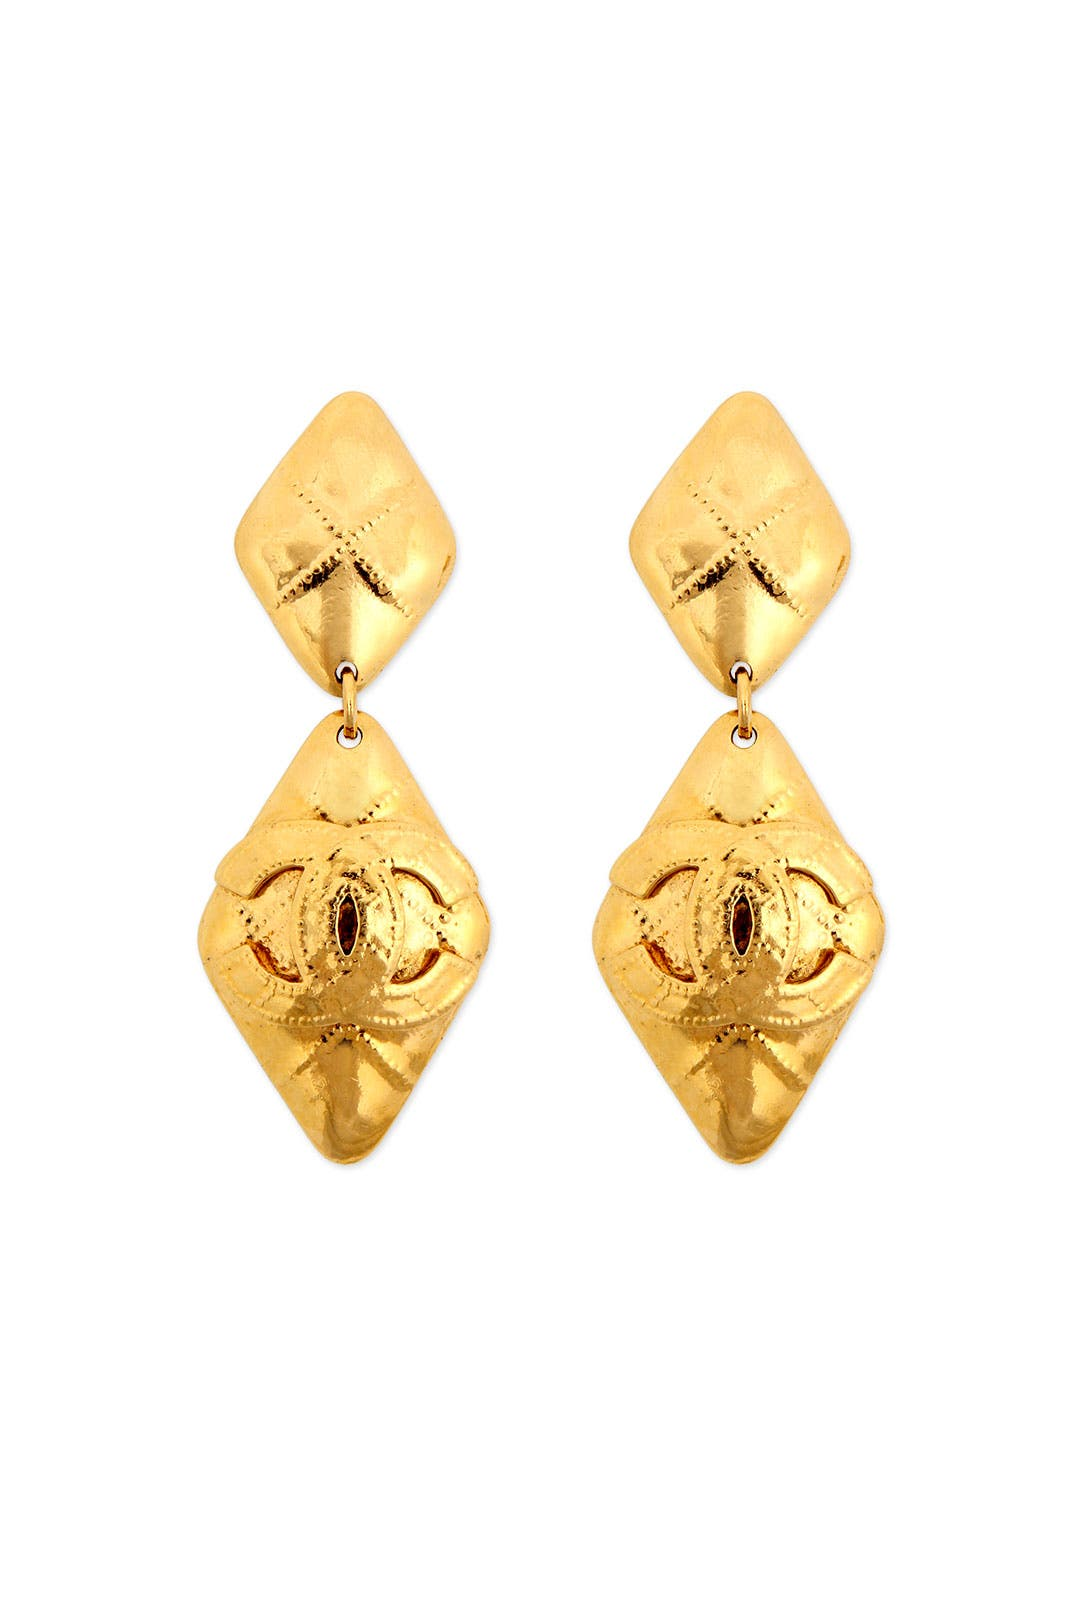 Vintage Chanel Quilted Diamond Drop Earrings by WGACA Vintage